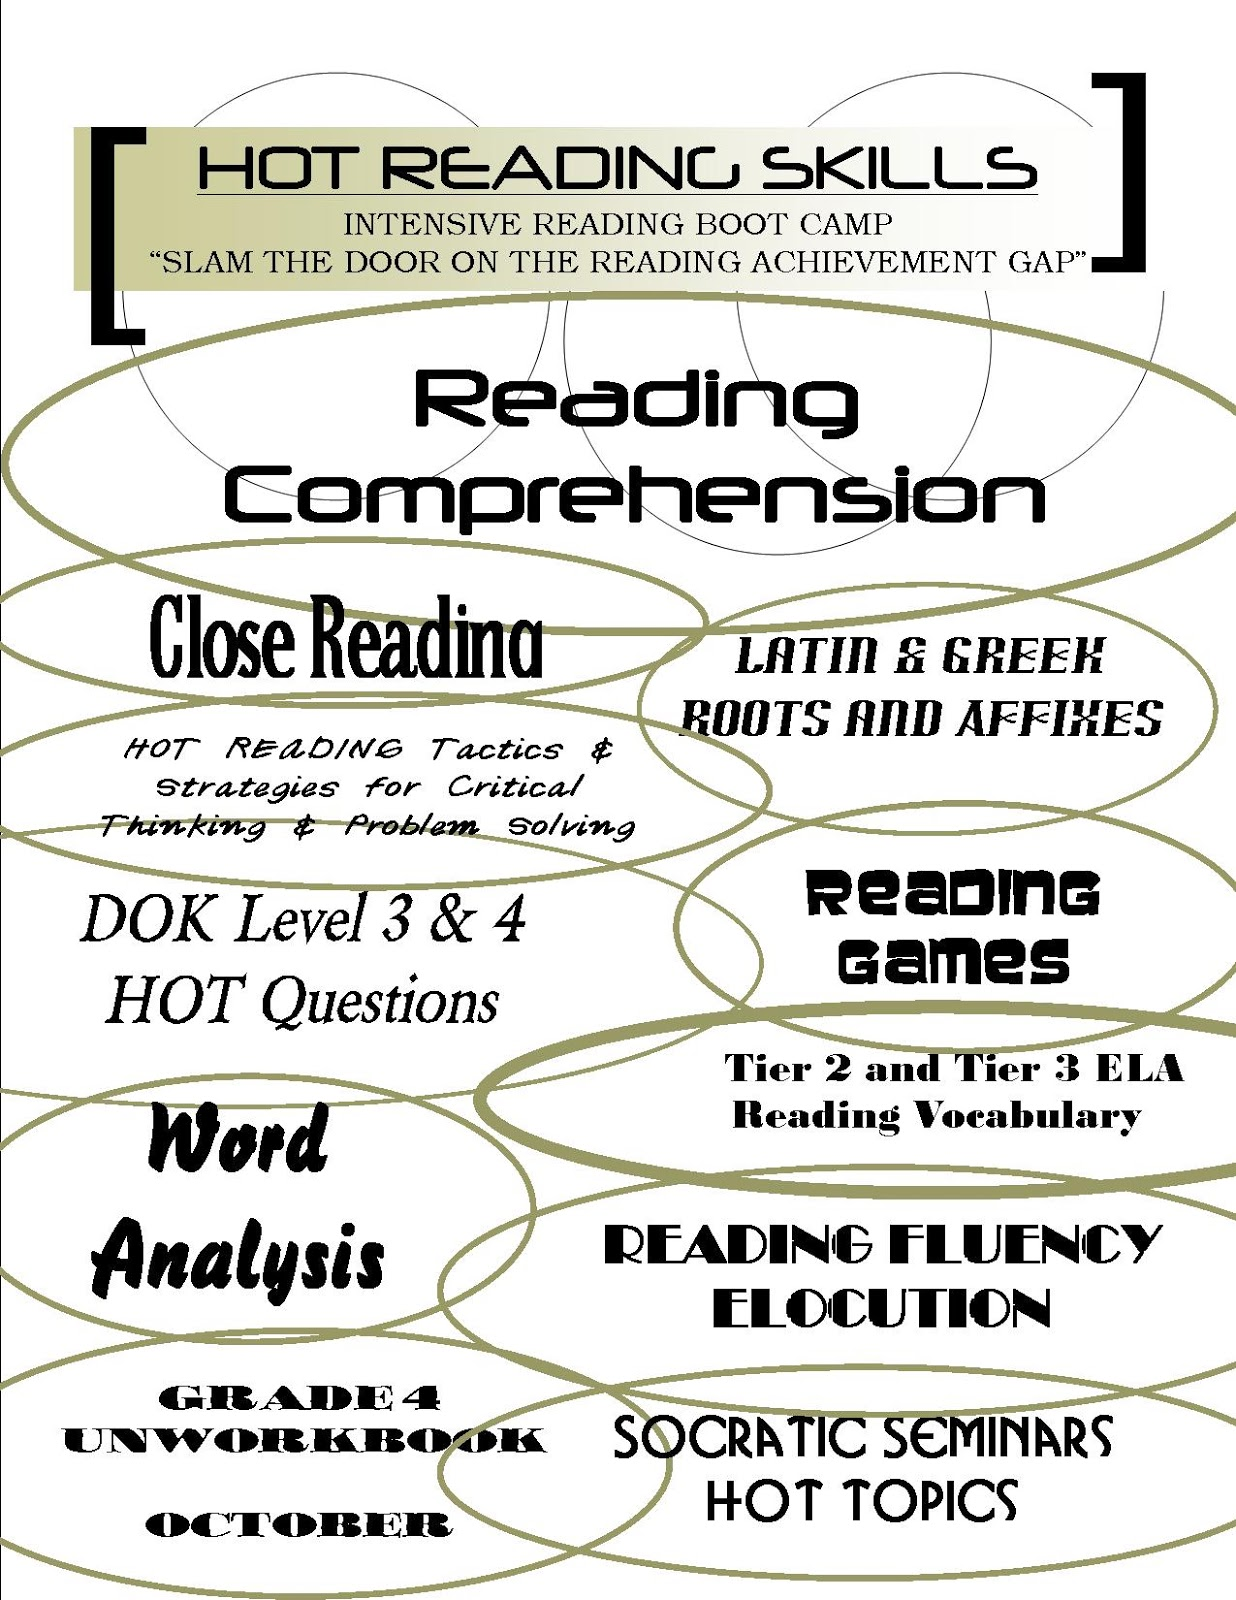 Worksheet Reading Comprehension Questions reading sage comprehension prepare your students with intensive dok level 3 and 4 two step questions targeted word study rigorous analysis